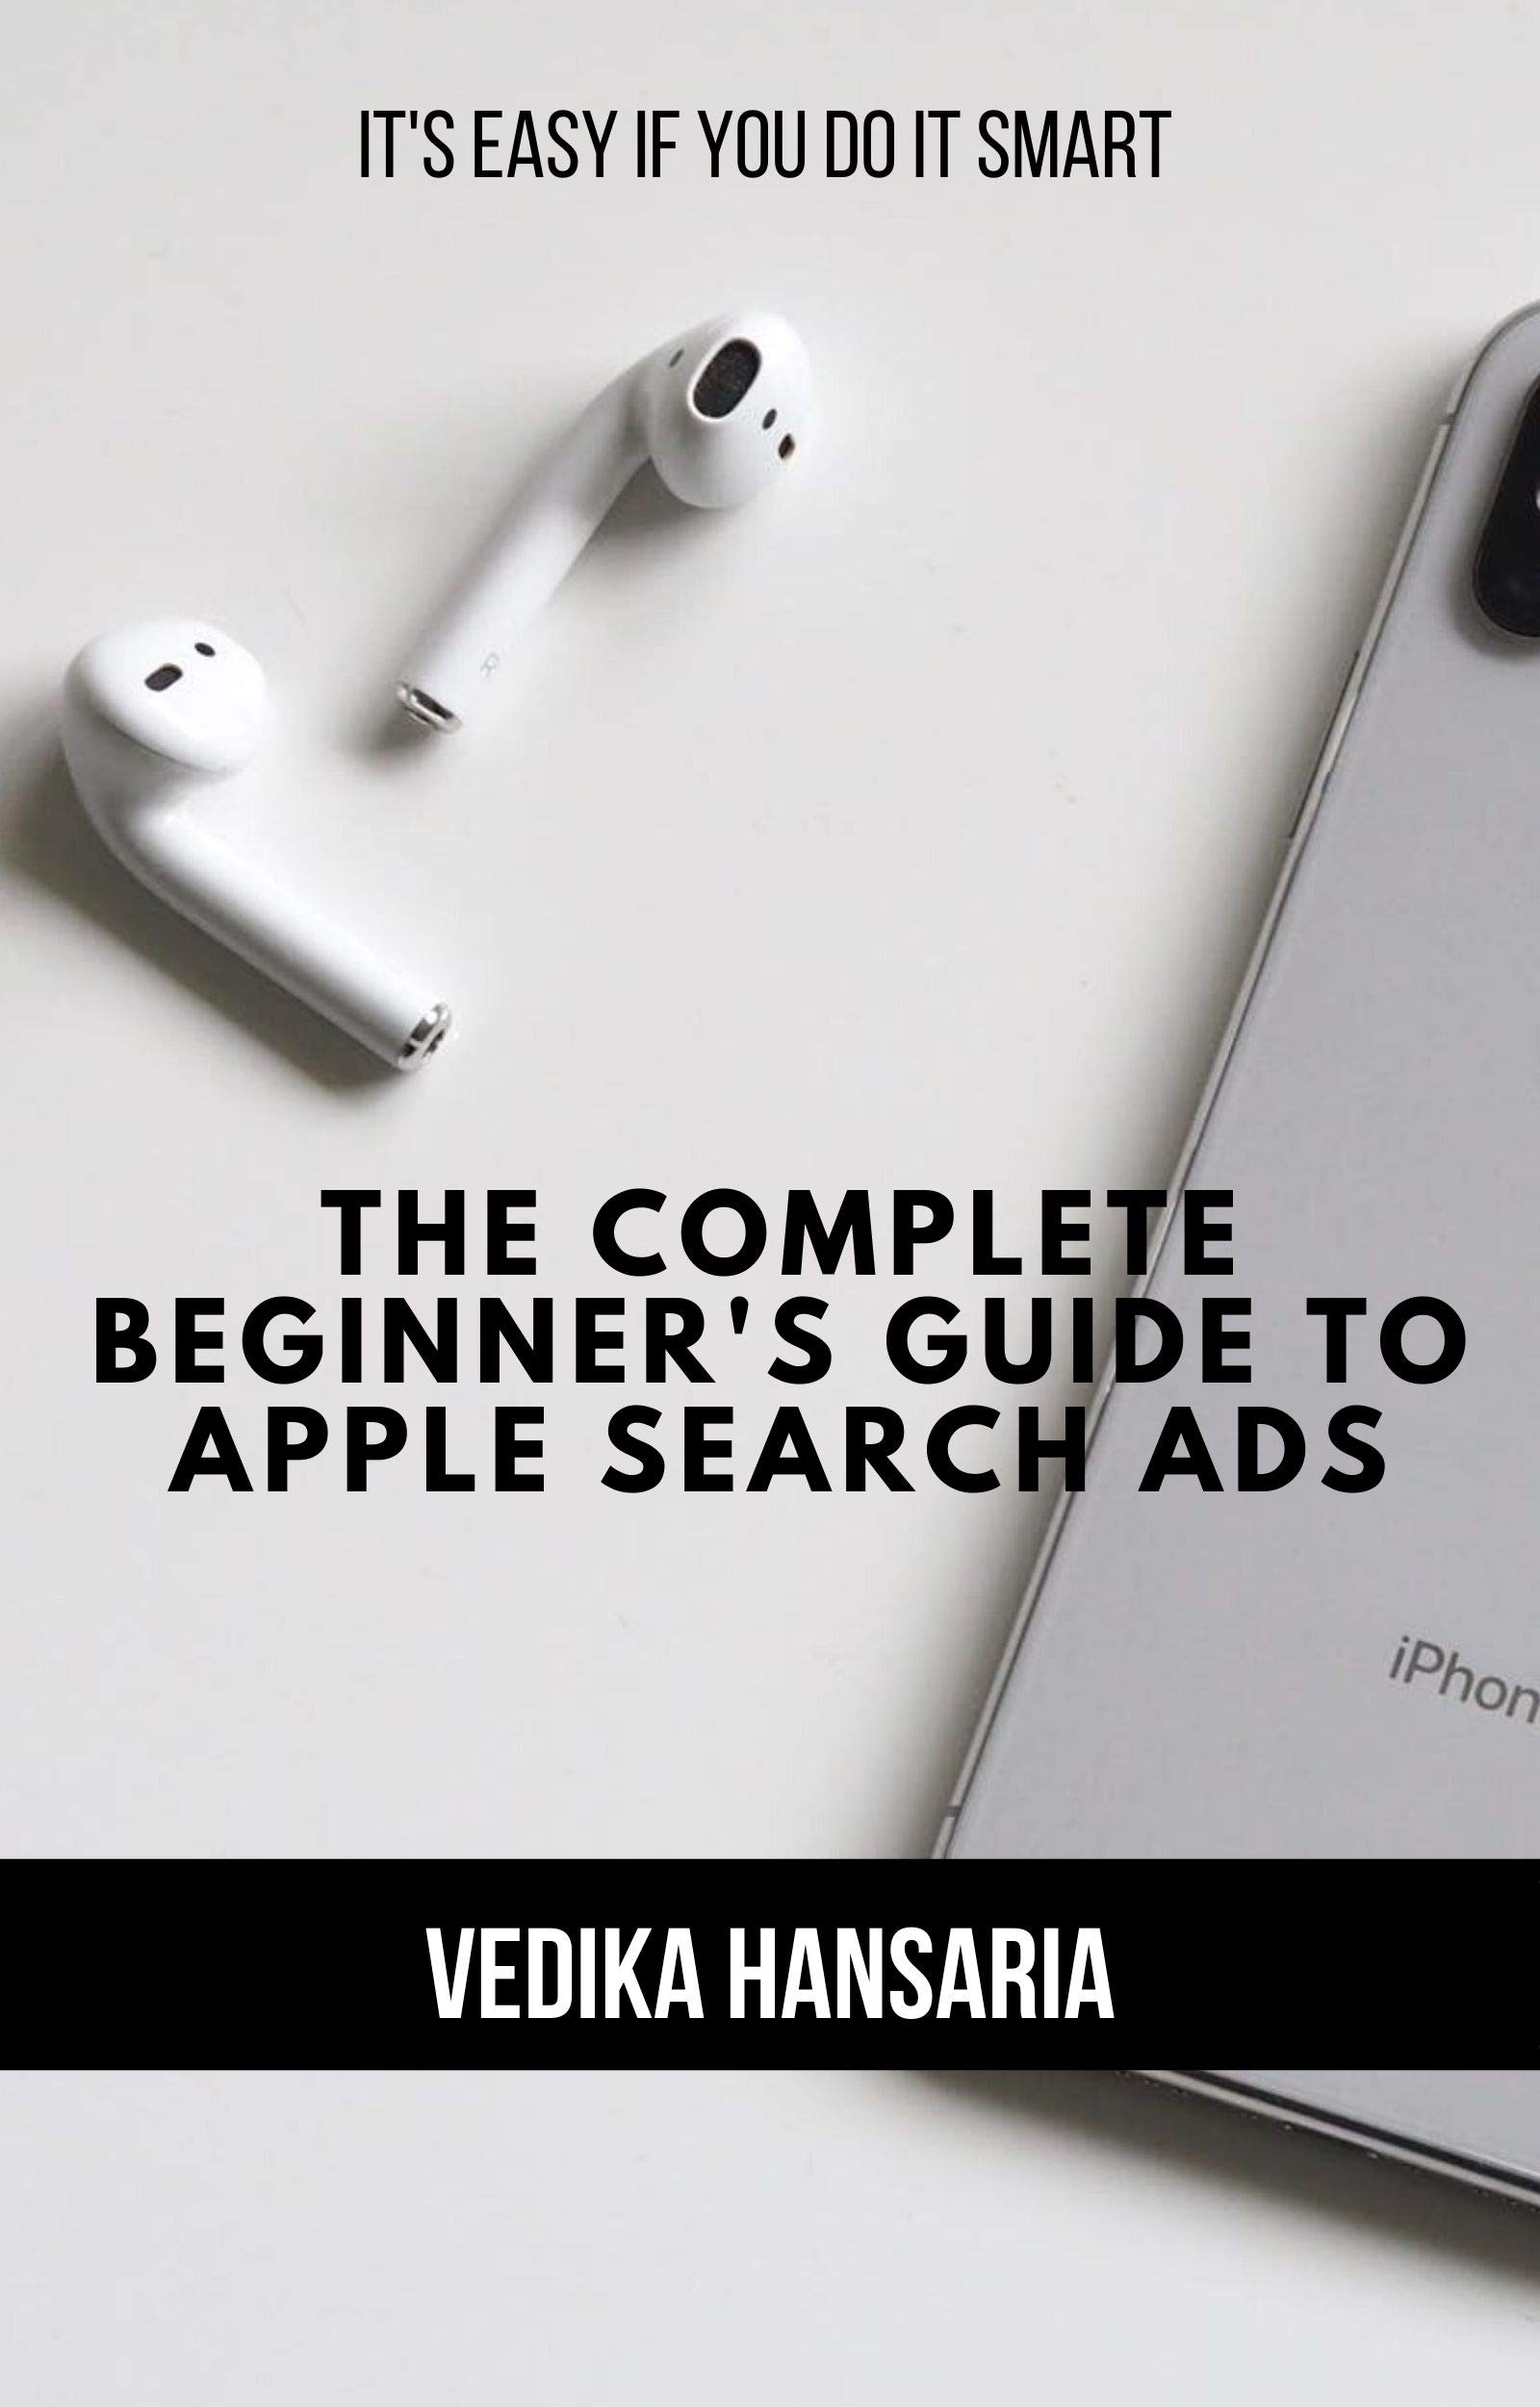 The Complete Beginner's Guide to Apple Search Ads: It's easy if you do it smart